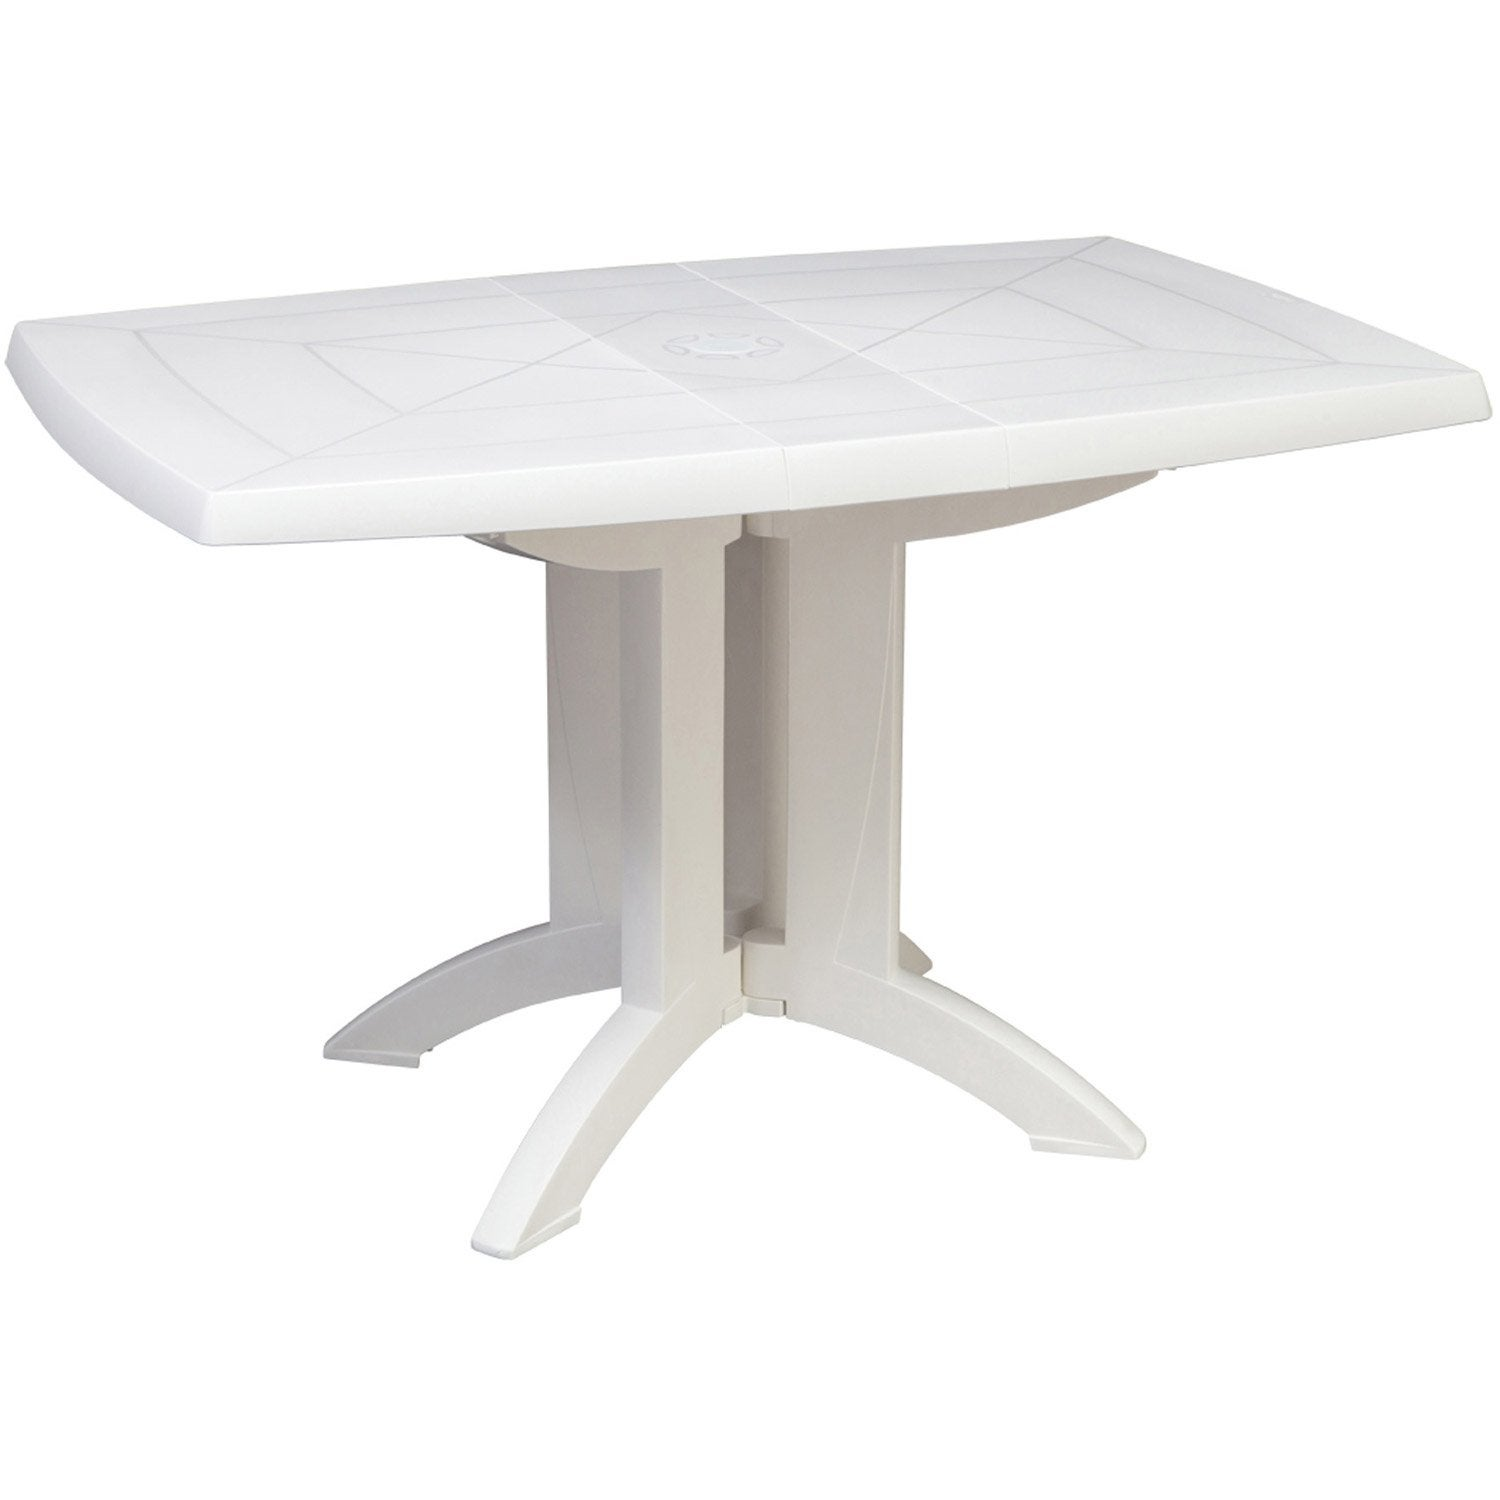 Table de jardin grosfillex v ga rectangulaire blanc 4 for Intermarche table de jardin